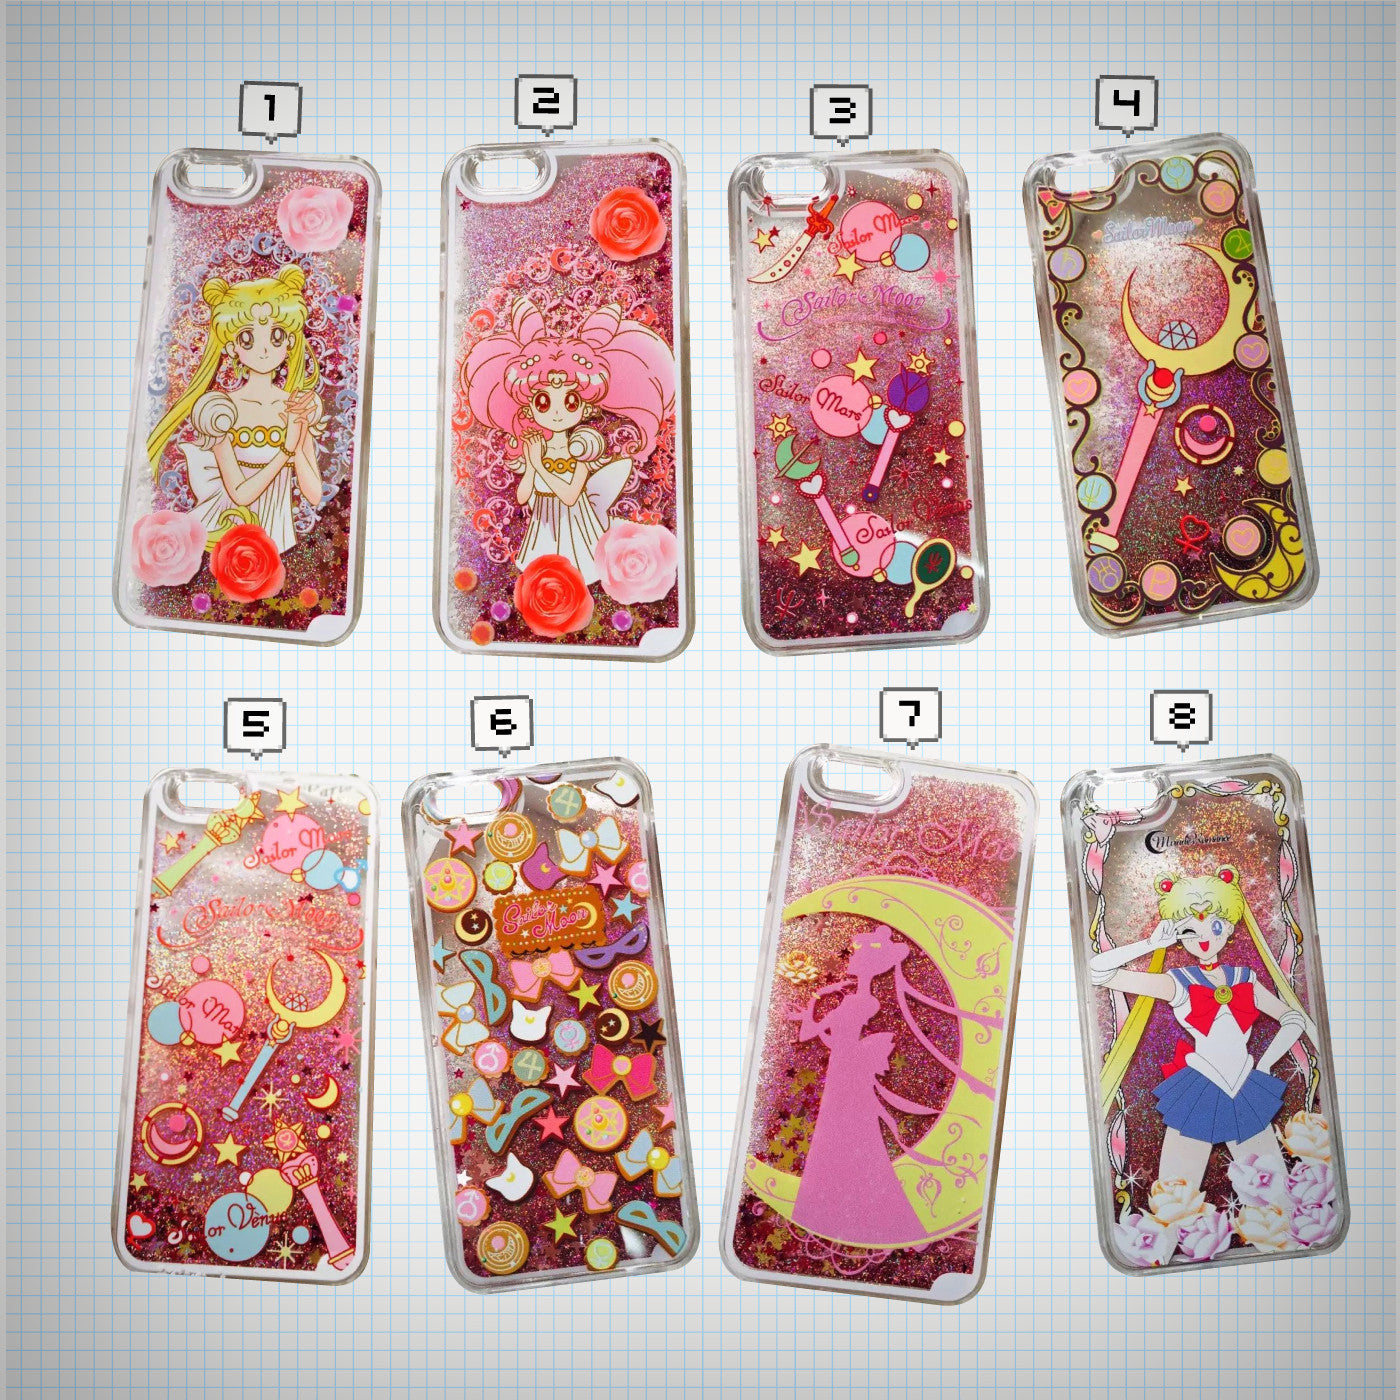 Sailor Moon Glitter Waterfall Phone Case - Ice Cream Cake